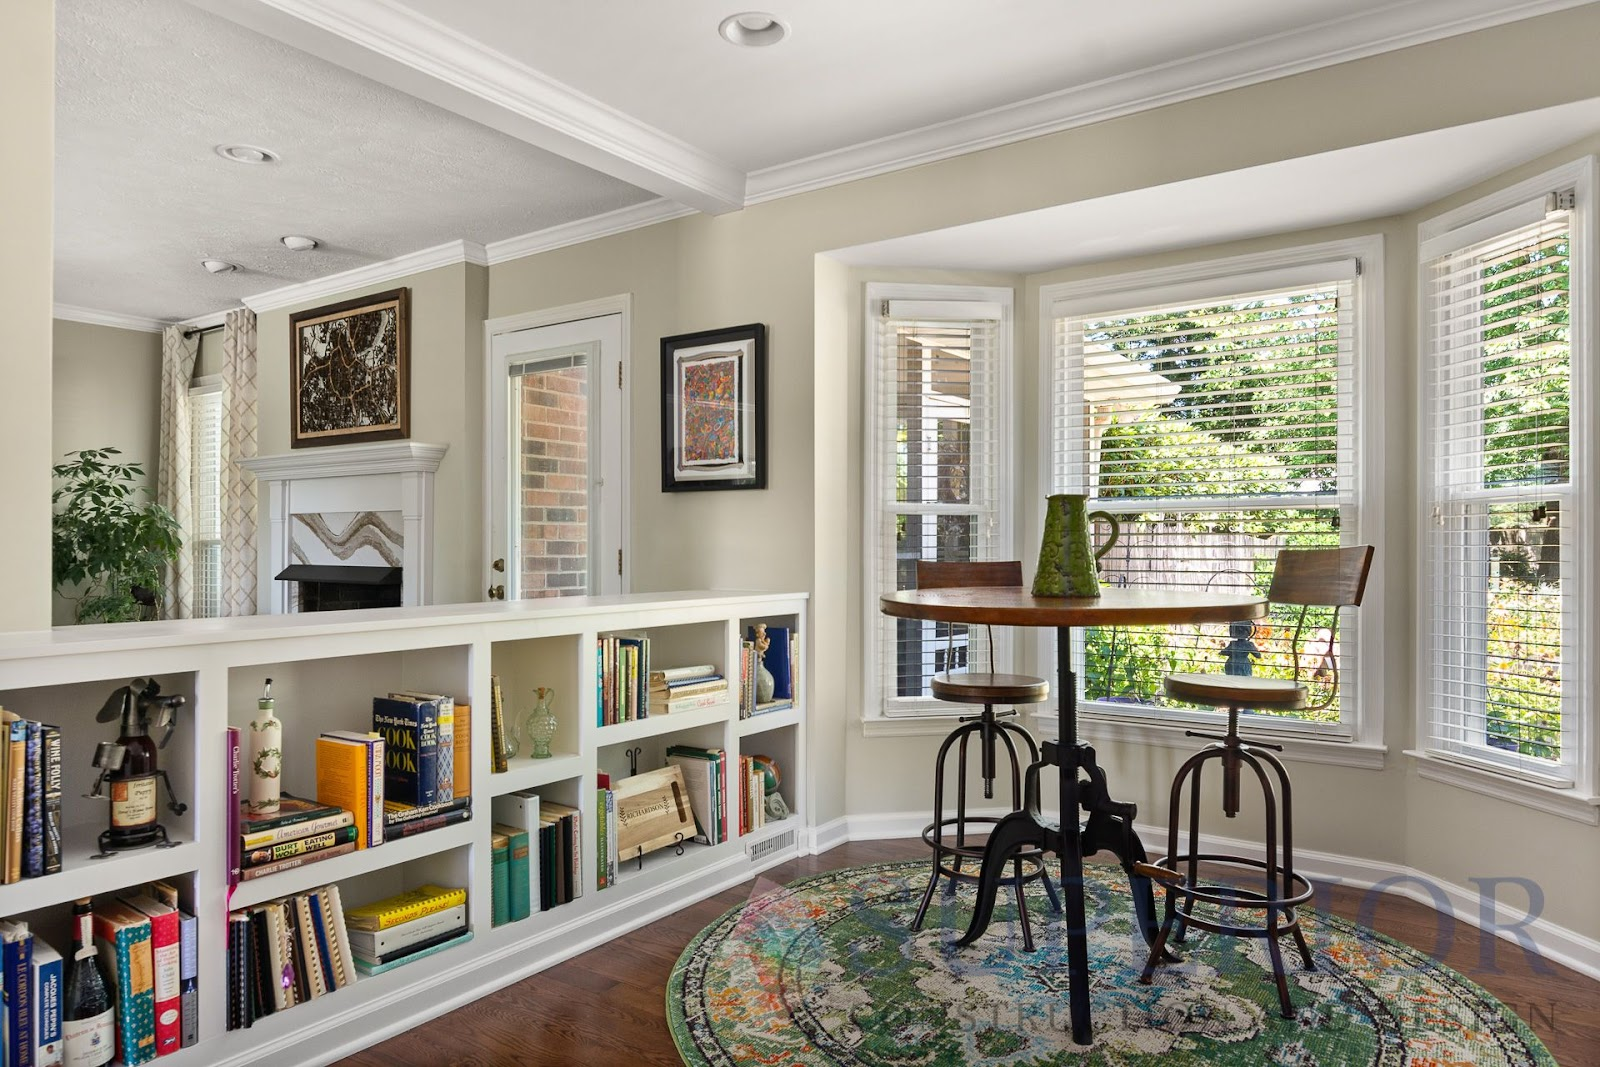 kitchen nook for home office built in shelving for library books window mt juliet tn superior constructions and design